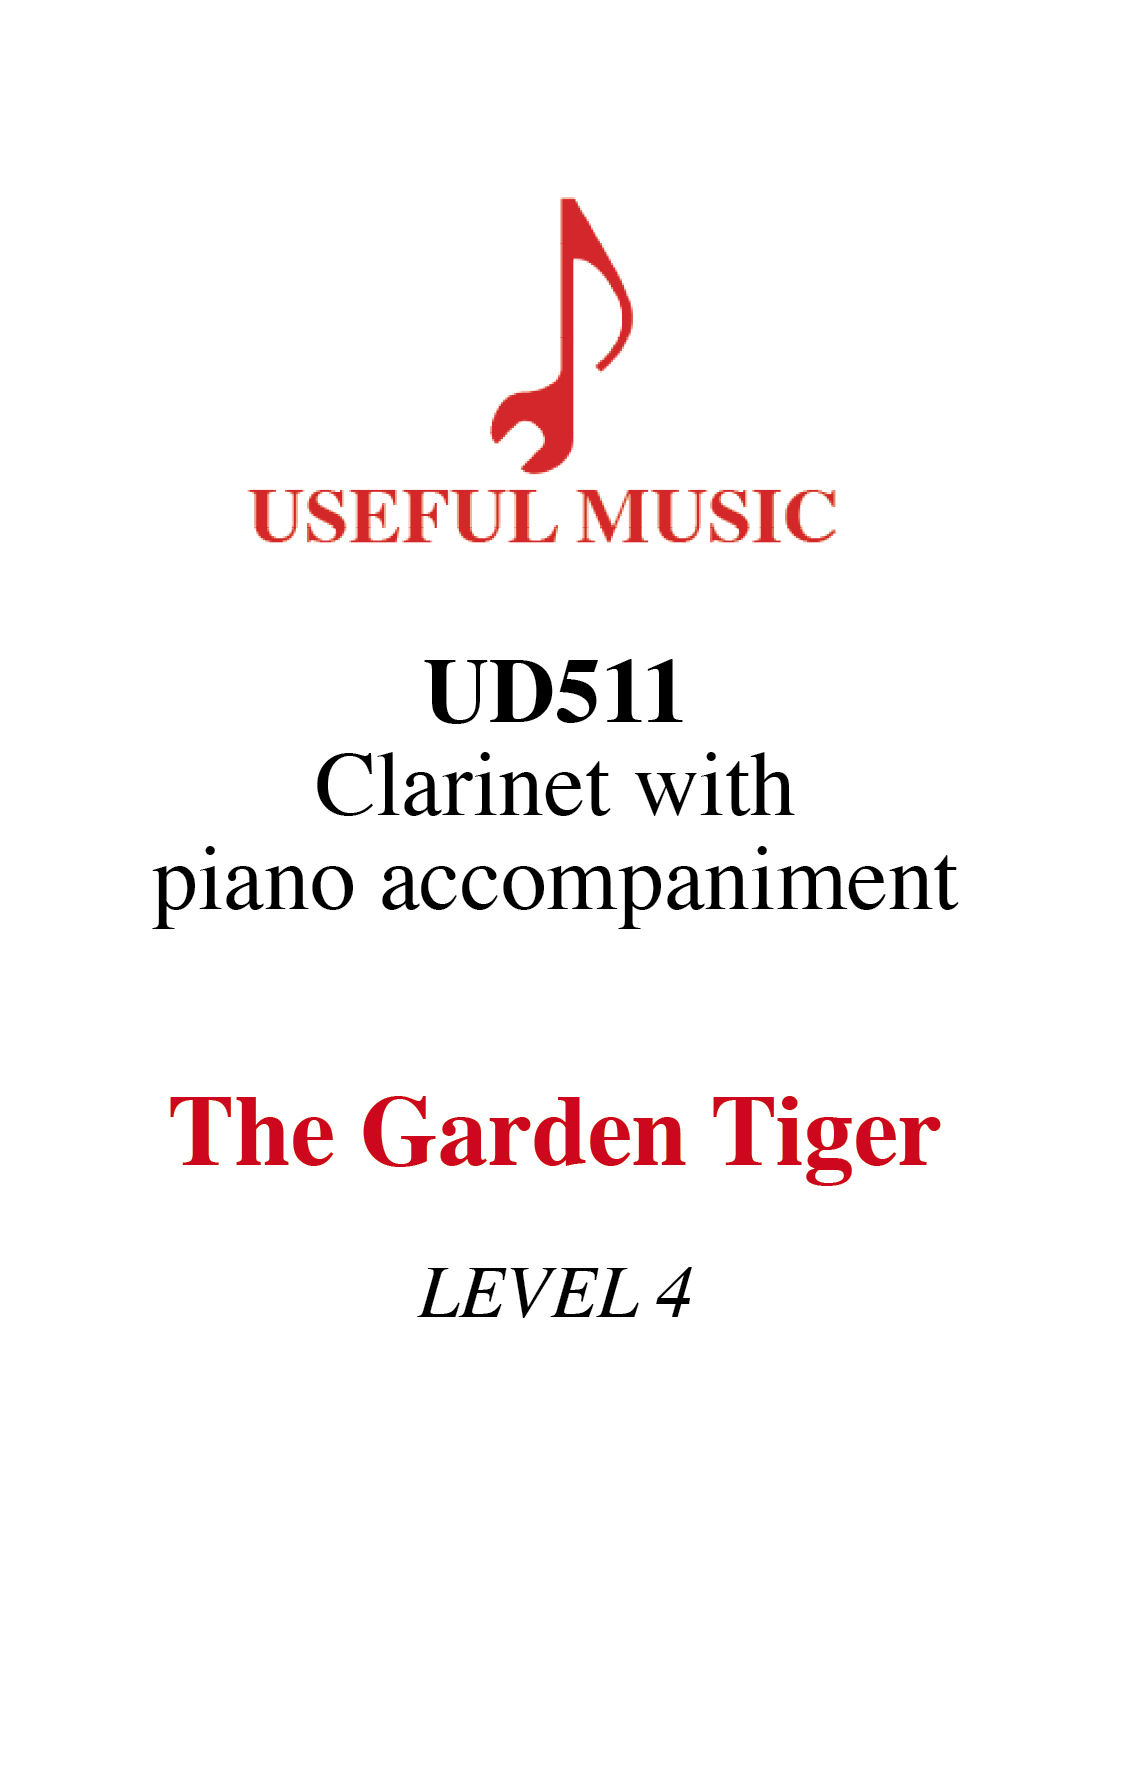 The Garden Tiger - Clarinet with piano accompaniment